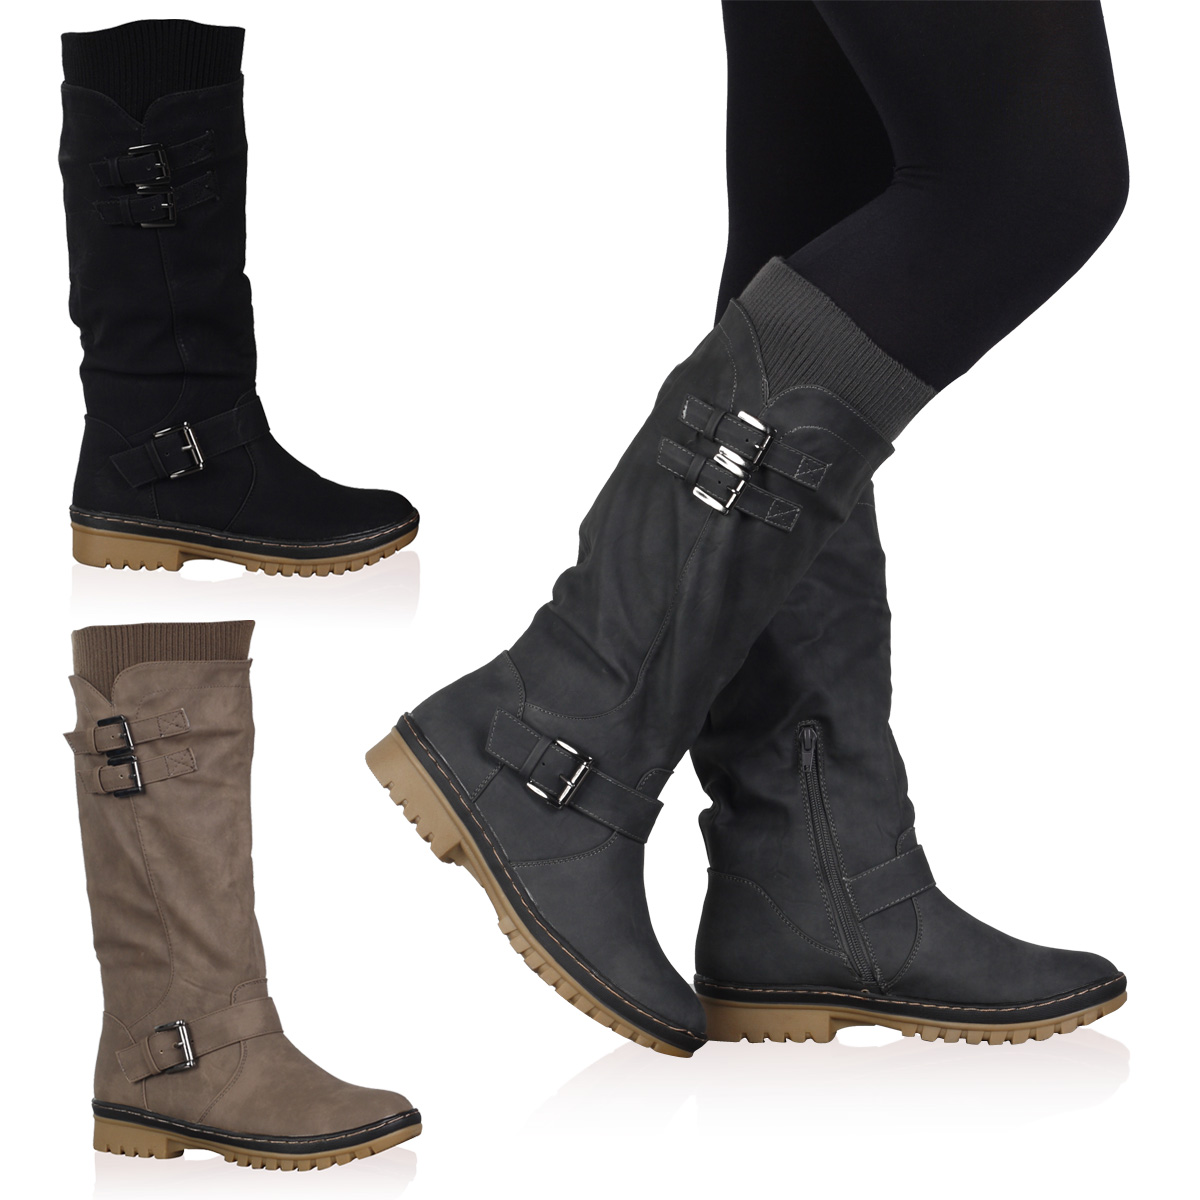 NEW WOMENS CALF LENGTH HIGH LADIES LINED GRIP SOLE WINTER BOOTS SHOES SIZE  3-8